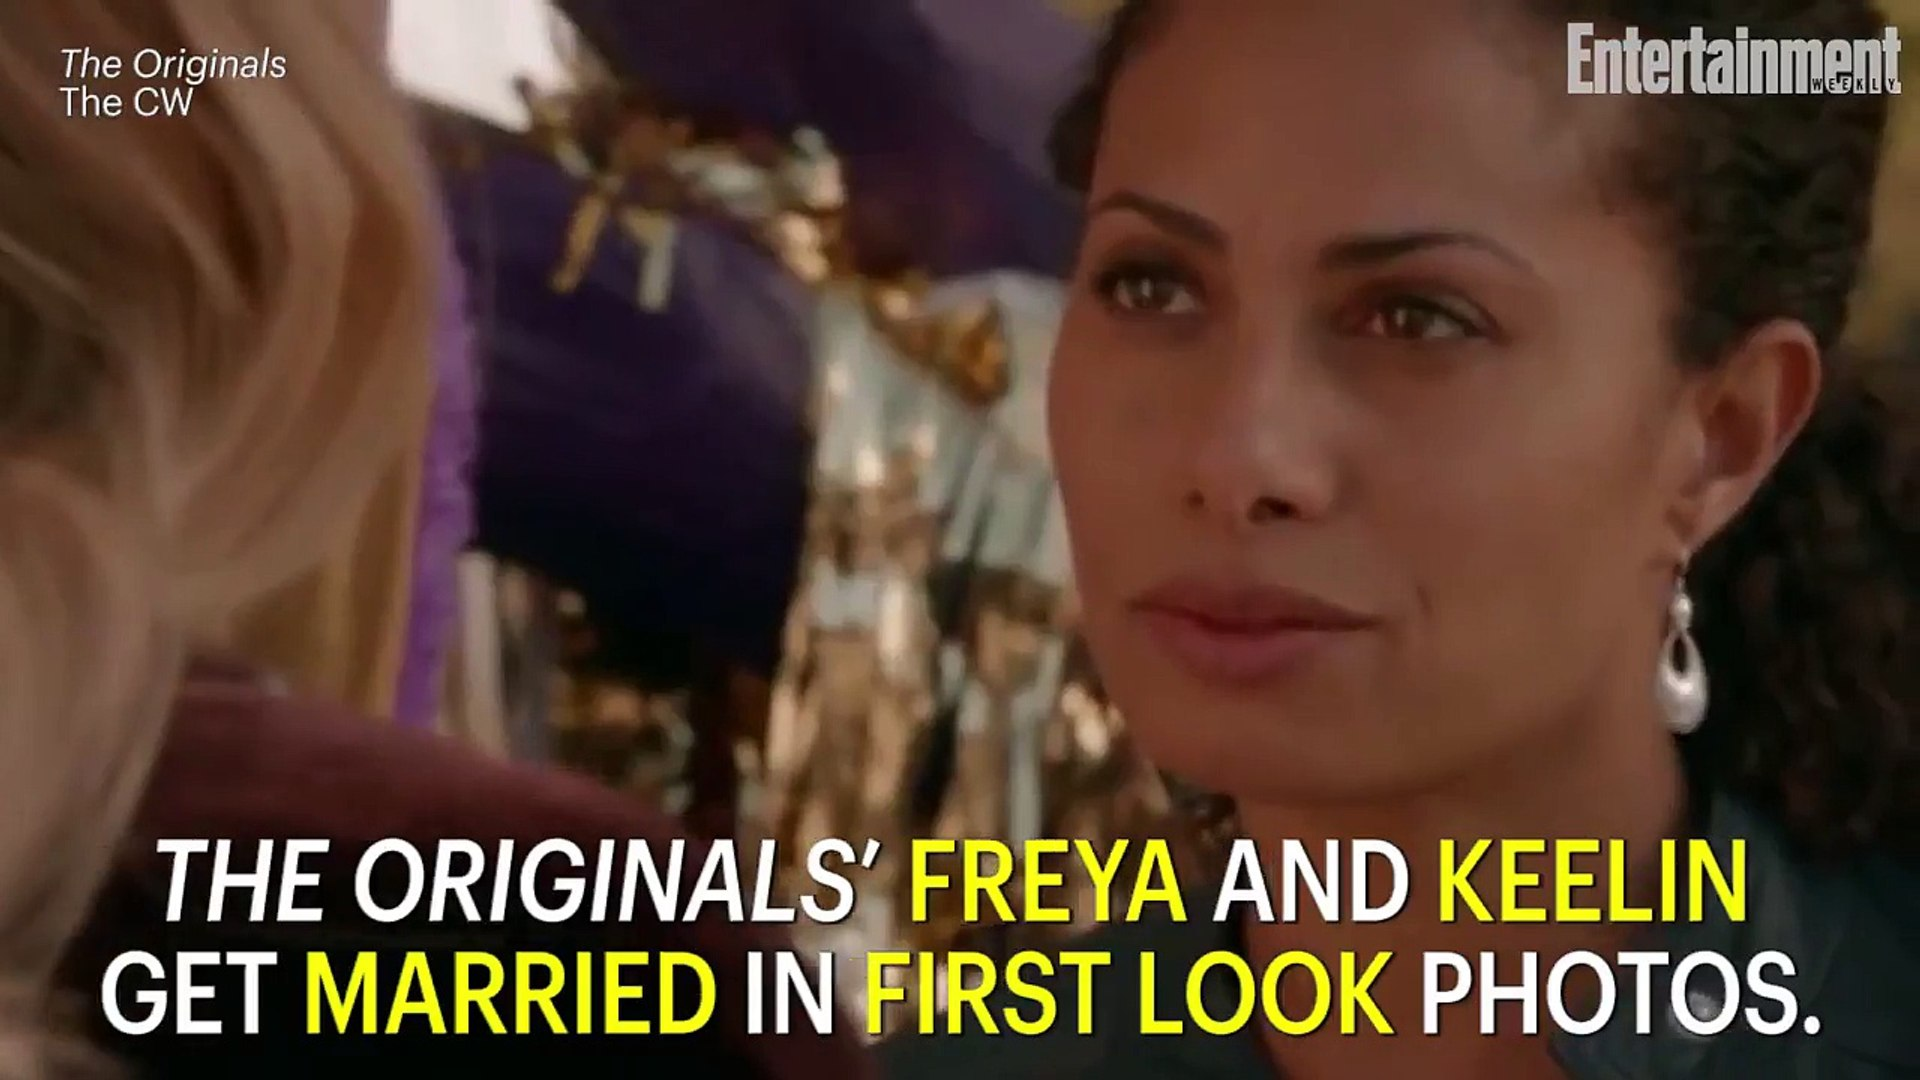 'The Originals' First Look: Freya And Keelin Get Married | News Flash | Entertainment Week